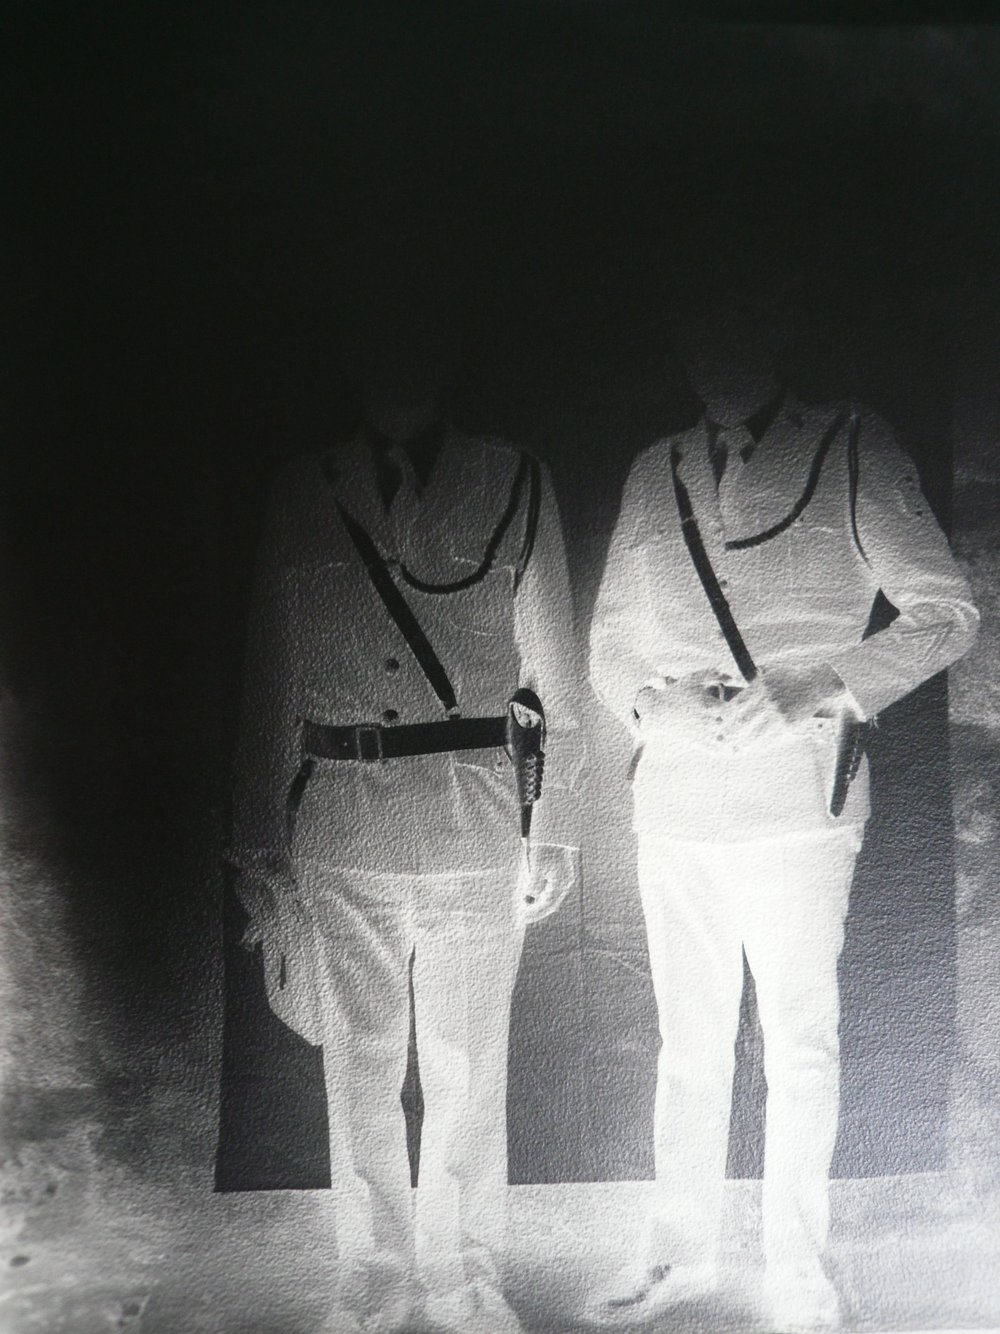 Image © Milagros de la Torre. Under the Black Sun (Policemen), 1991-1993. Archival pigment print on cotton paper, mounted on aluminum. 80 x 60 in.